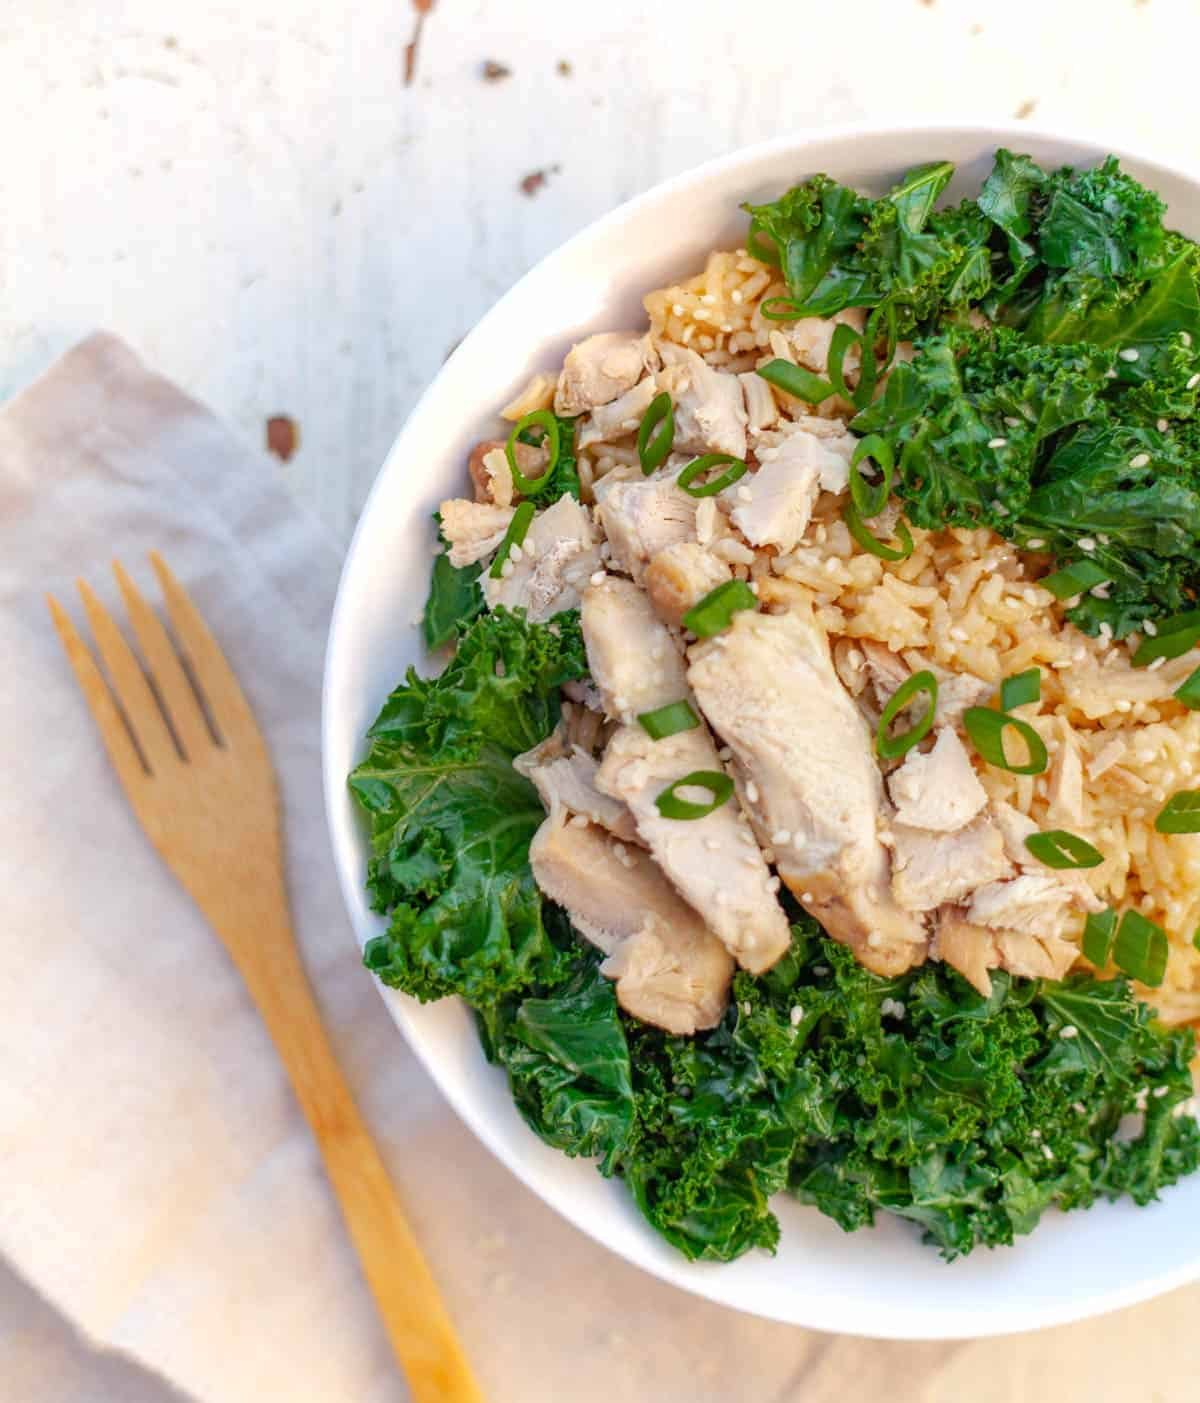 A white bowl filled with instant pot cooked brown rice and sliced chicken thigh with kale and green onion